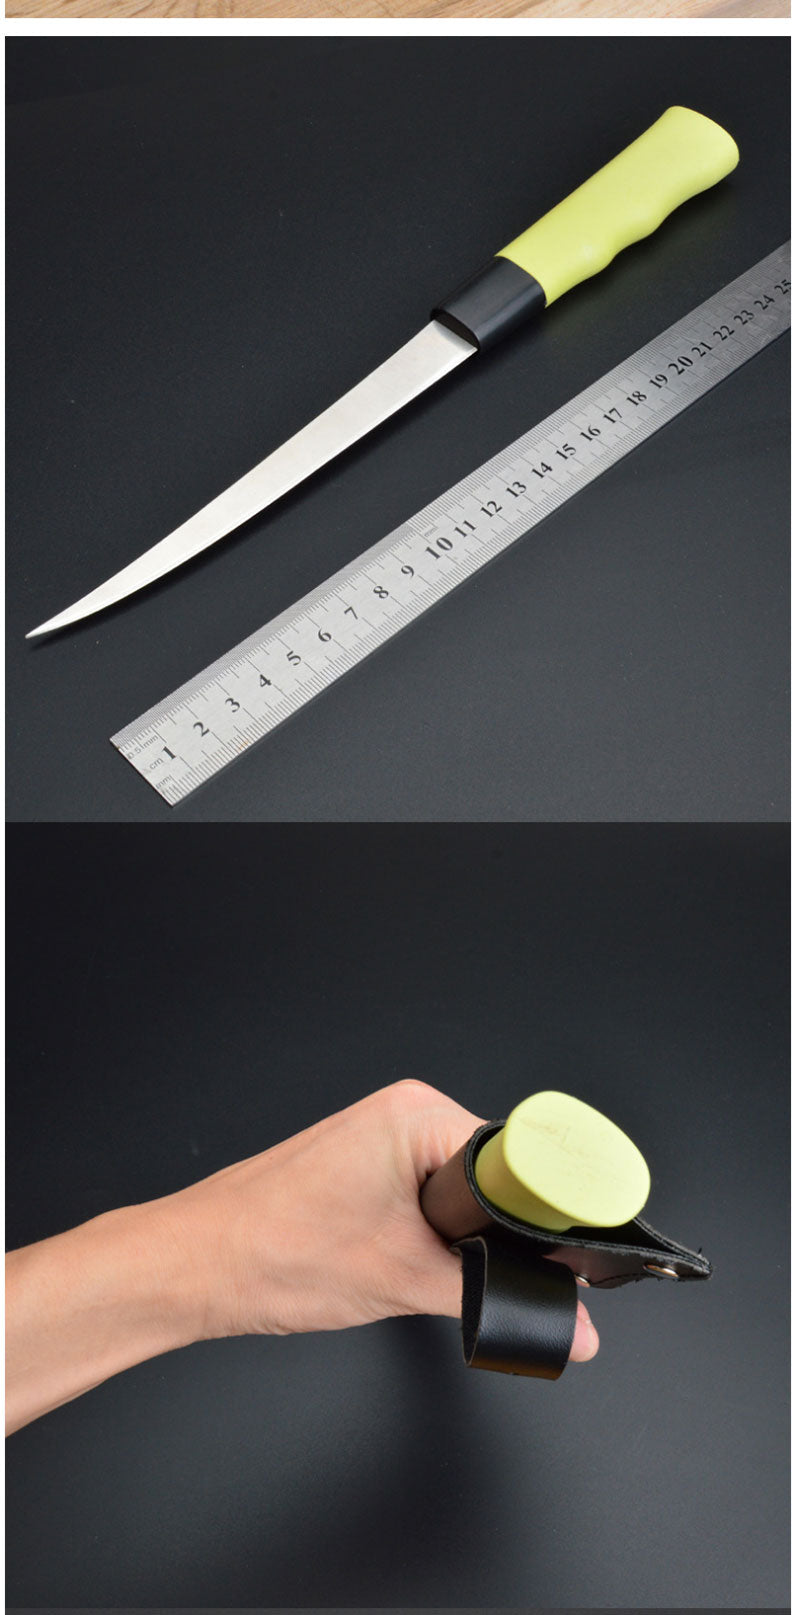 RSCHEF Filleting Knife